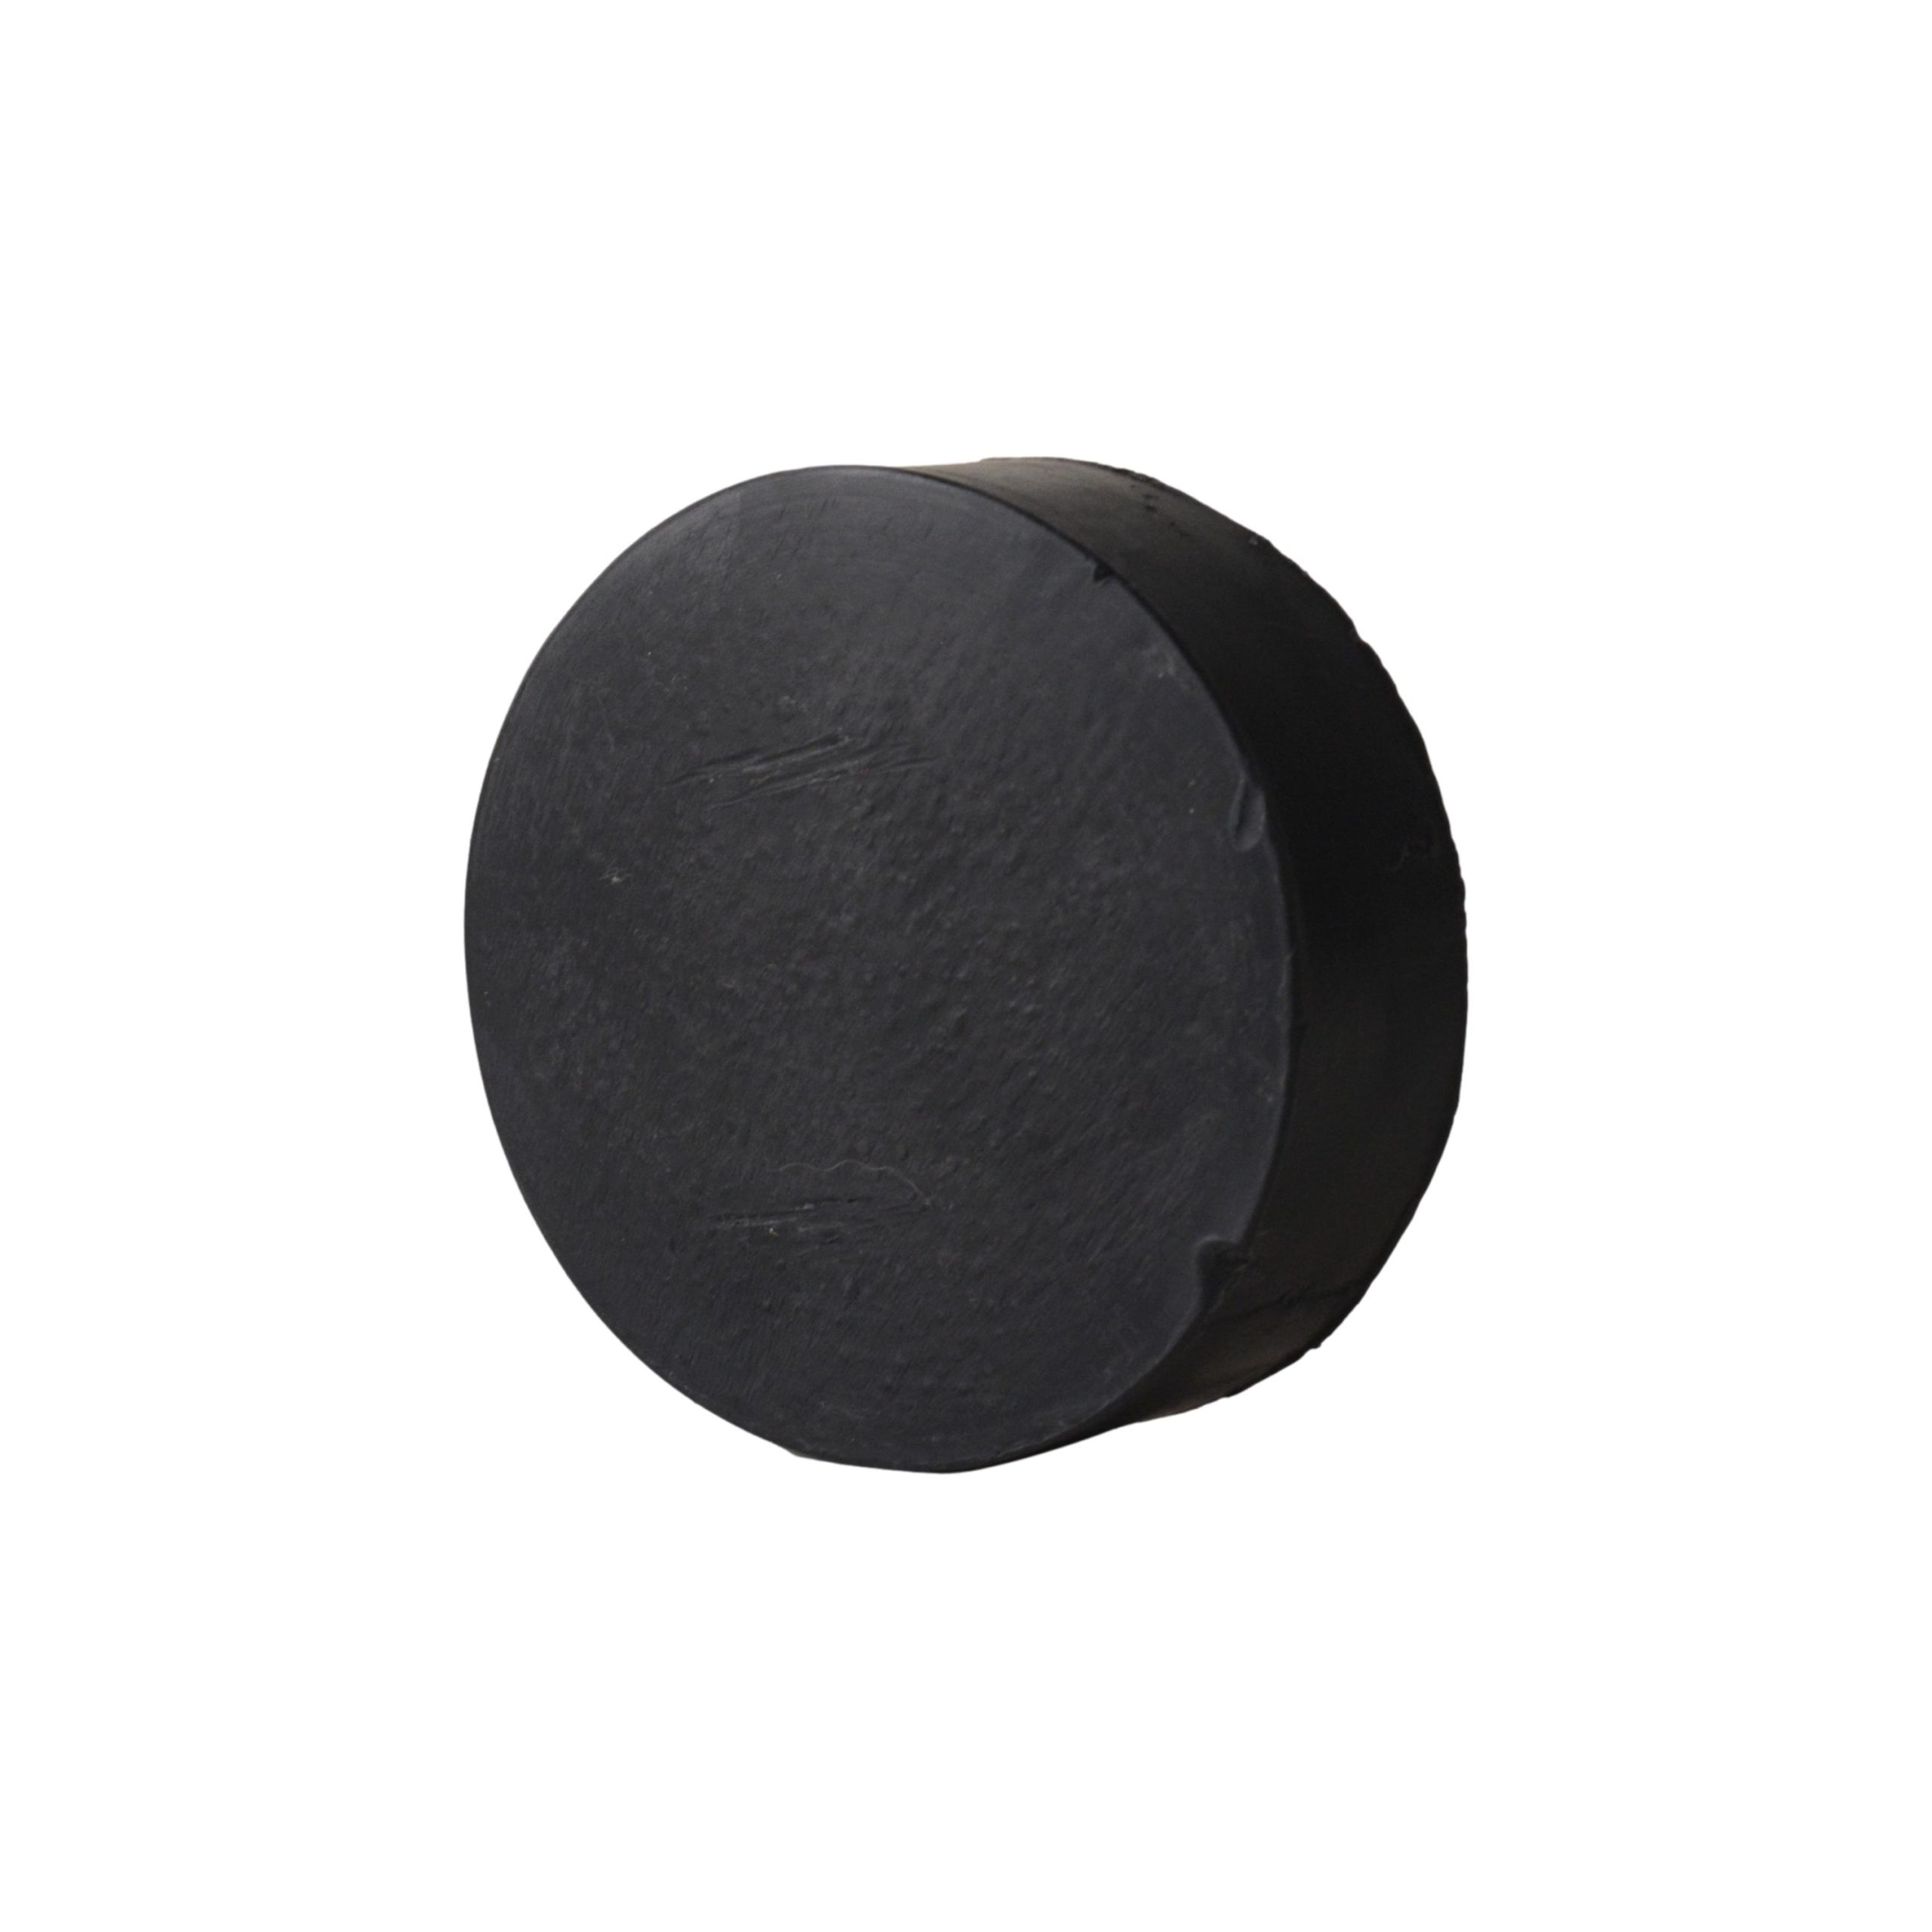 Handmade-Soaps-Activated-Charcoal-Soap-Round-Disk-100G